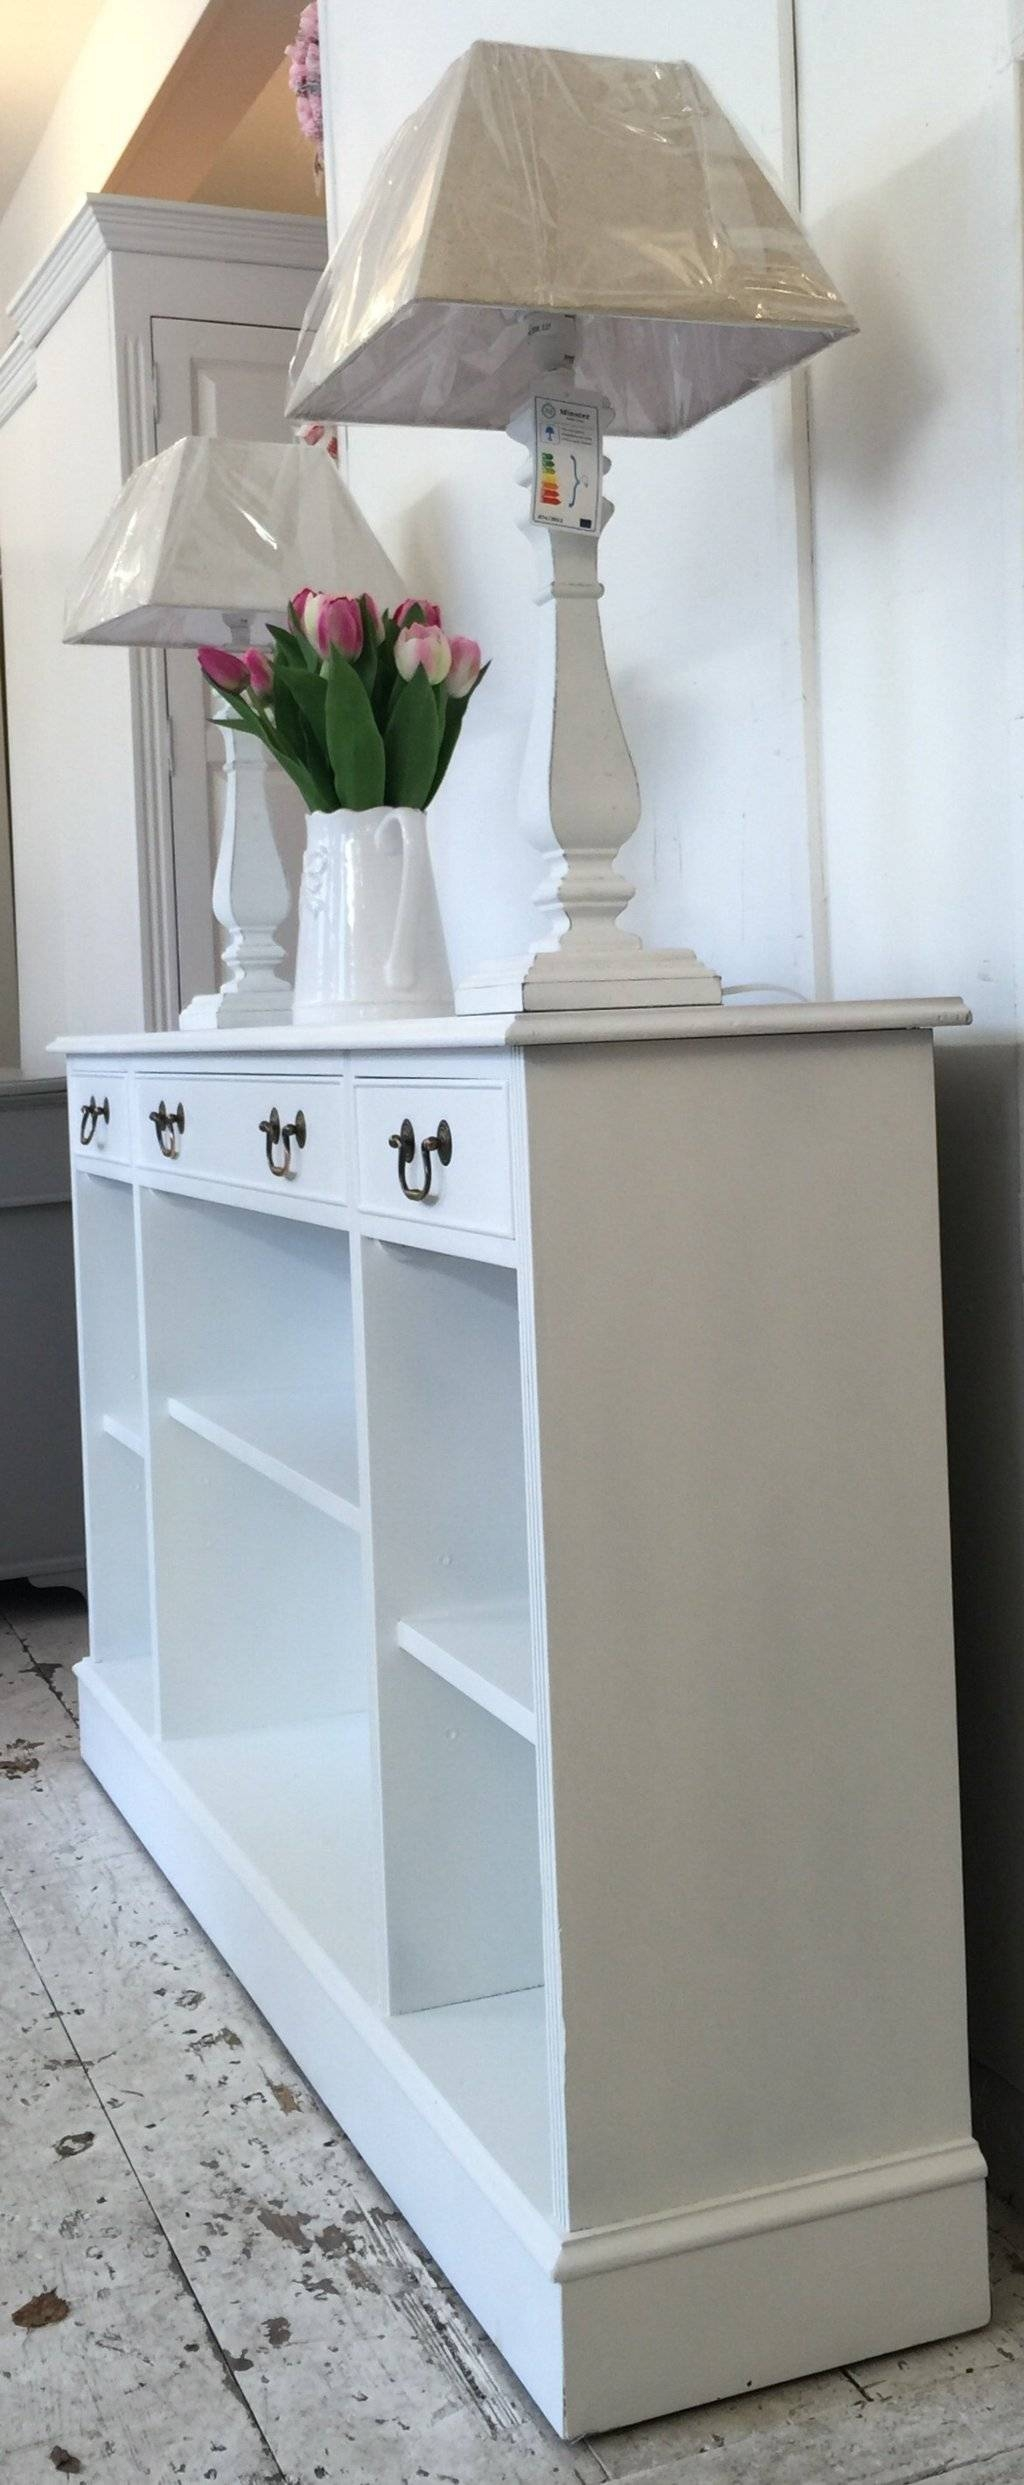 30 Best Ideas of Shallow Sideboard Cabinets